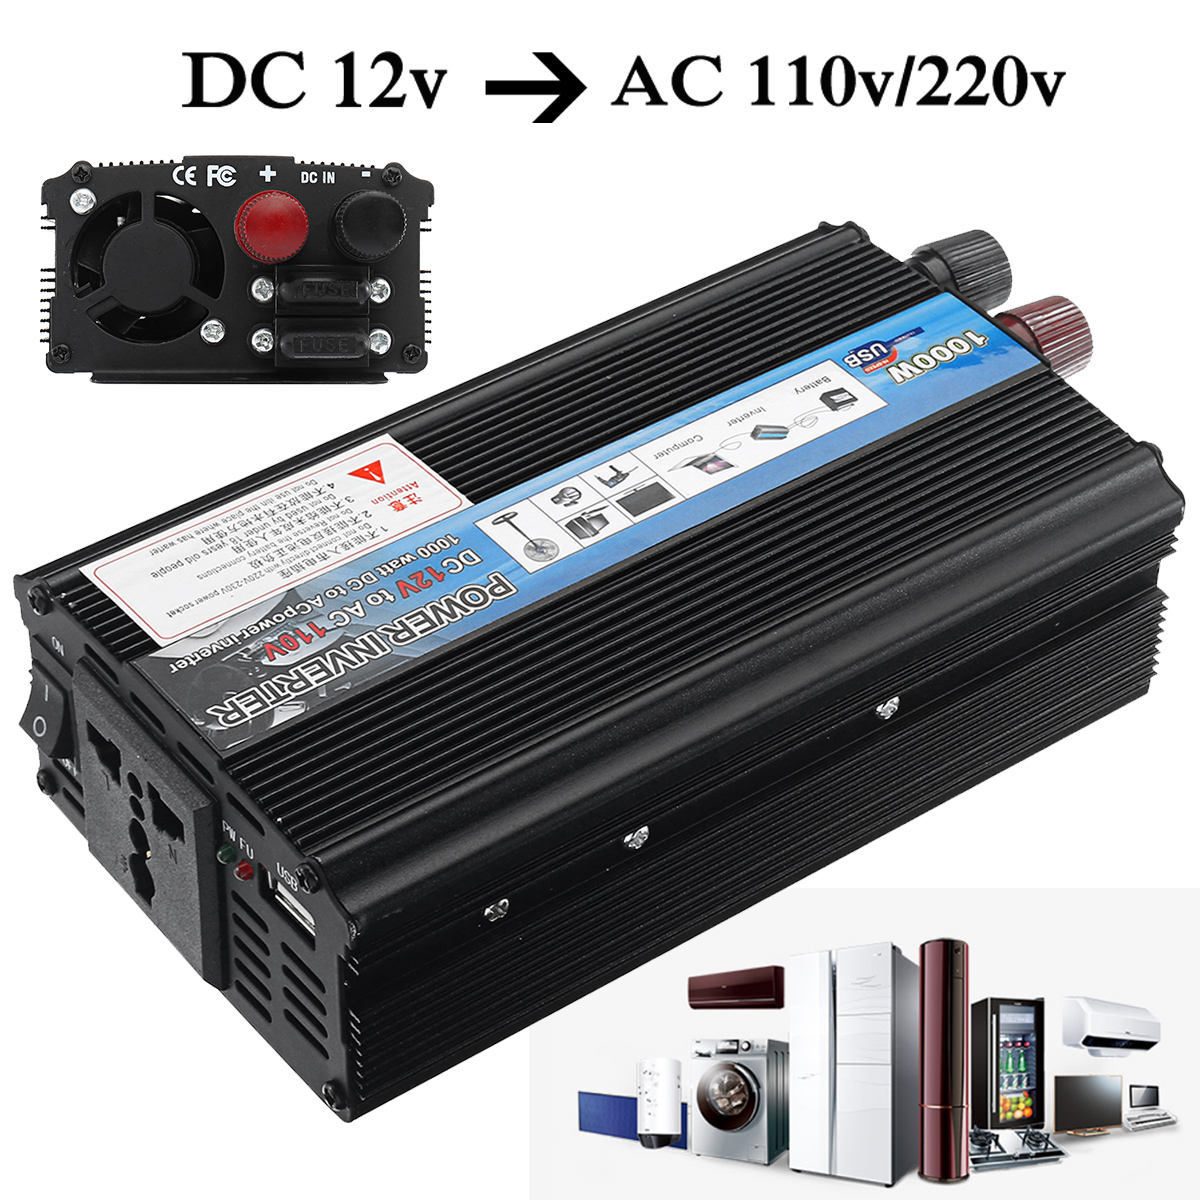 1000W Modified Sine Wave Power Inverter DC 12V to AC 110V / 220V Voltage Transformer Converter USB Charger Adapter Portable high quality dc 12 to ac 220 modified sine wave 1000w dc12v to ac 220v car power inverter with usb charger converter adapter